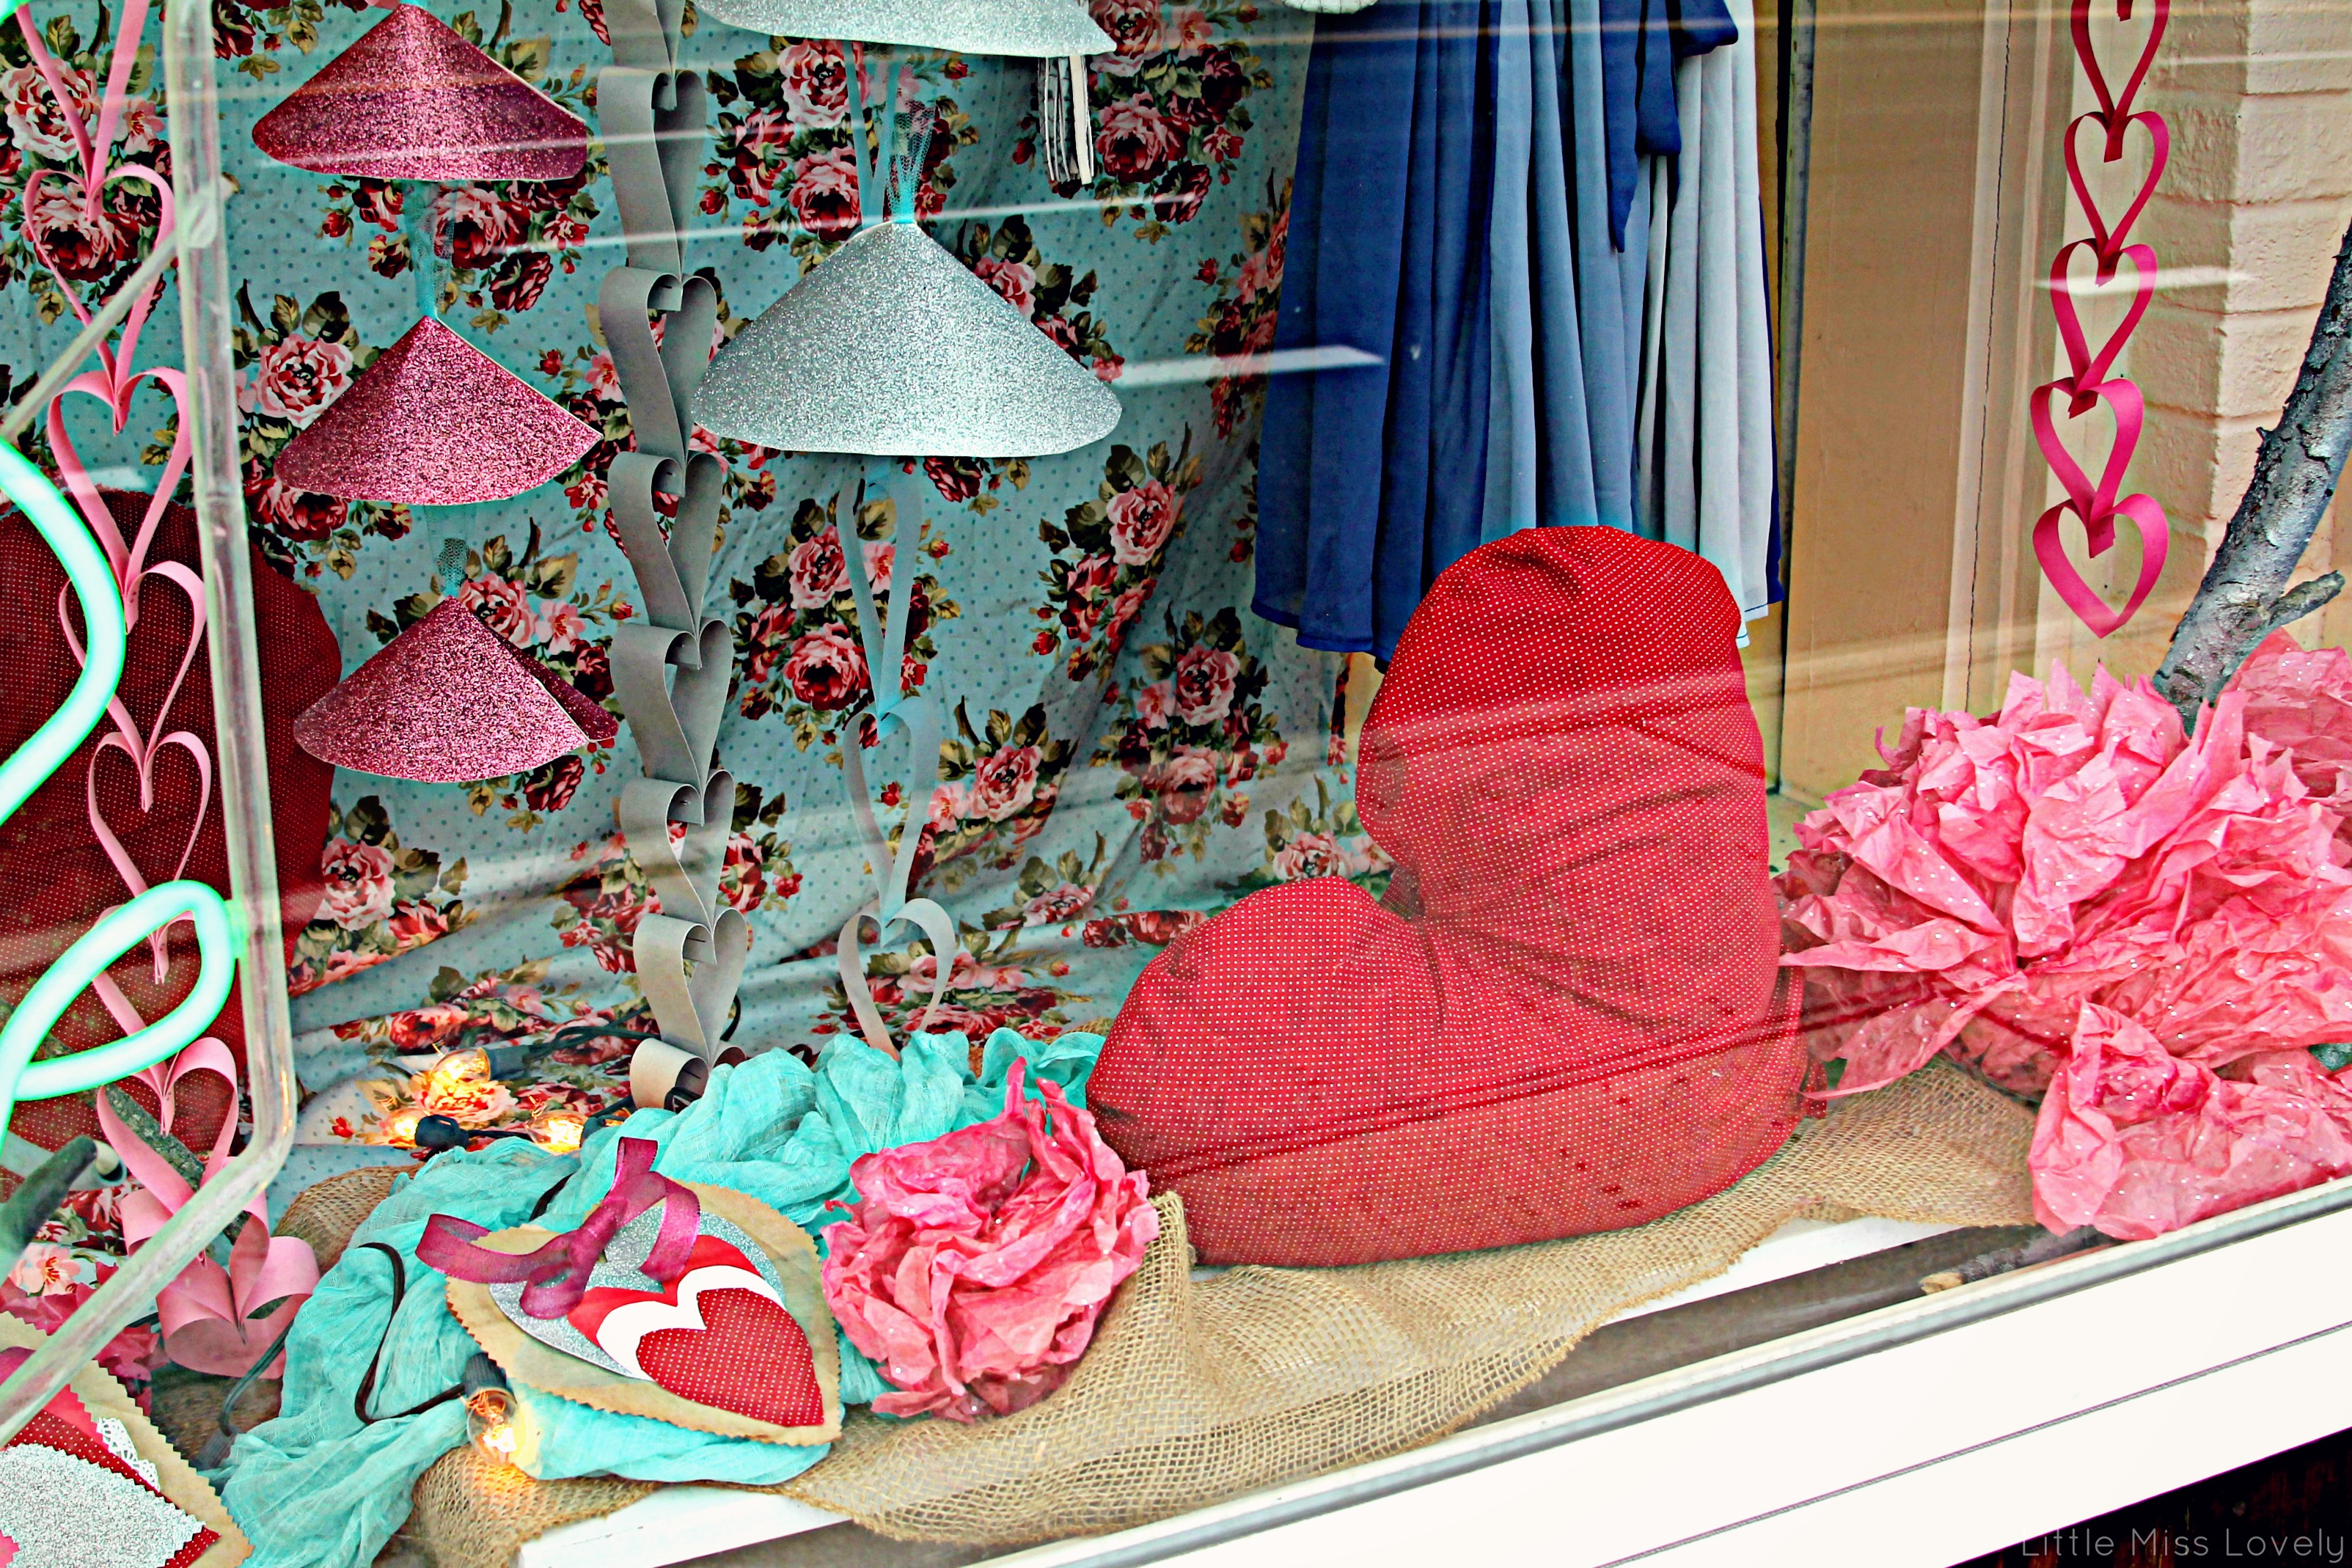 Little_Miss_Lovely_Window_Decorating_Design